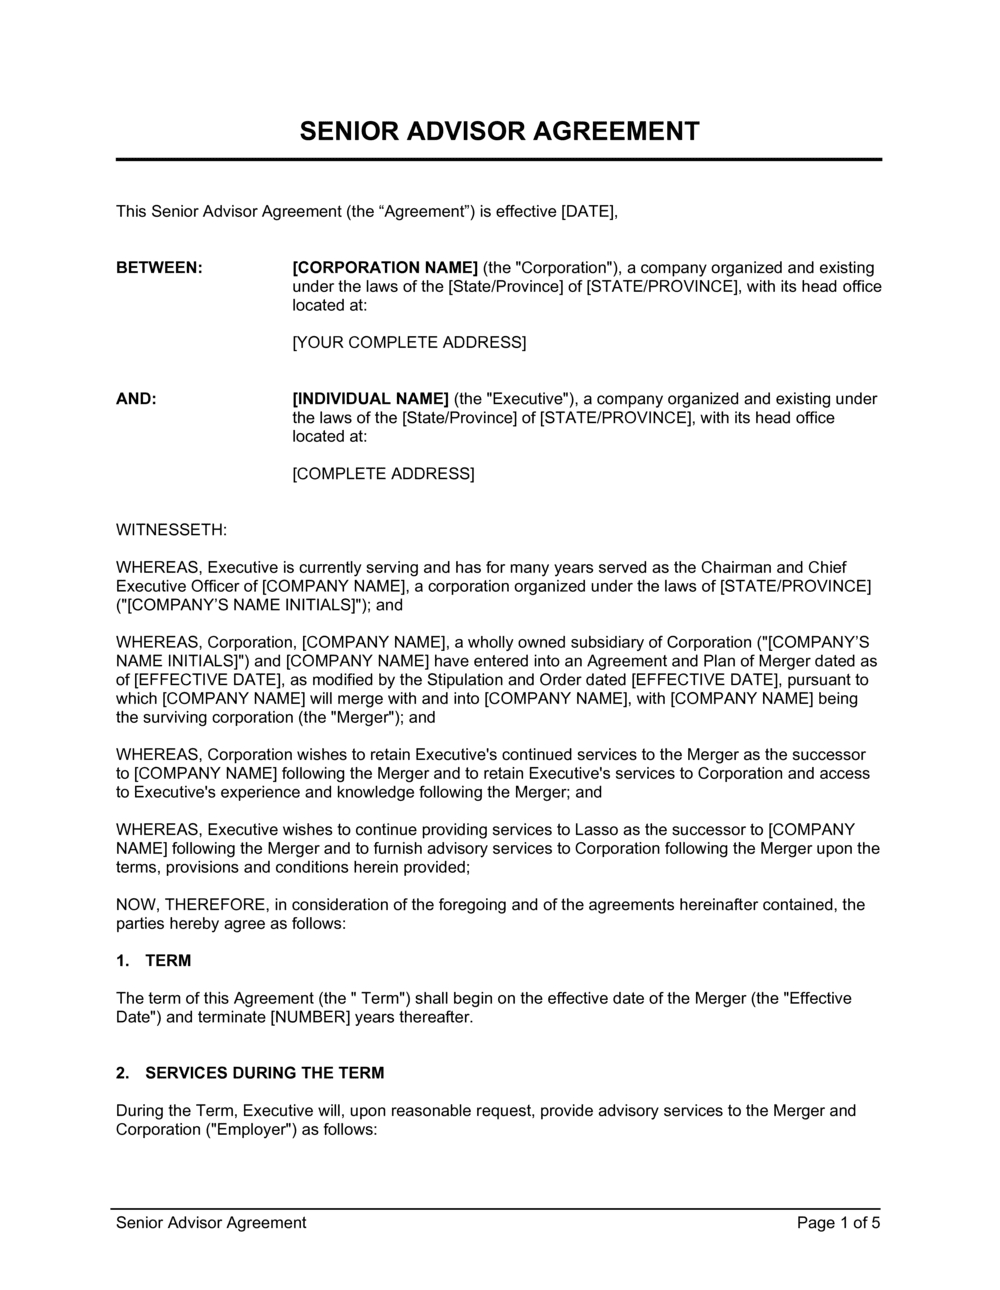 Business-in-a-Box's Senior Advisor Agreement Template